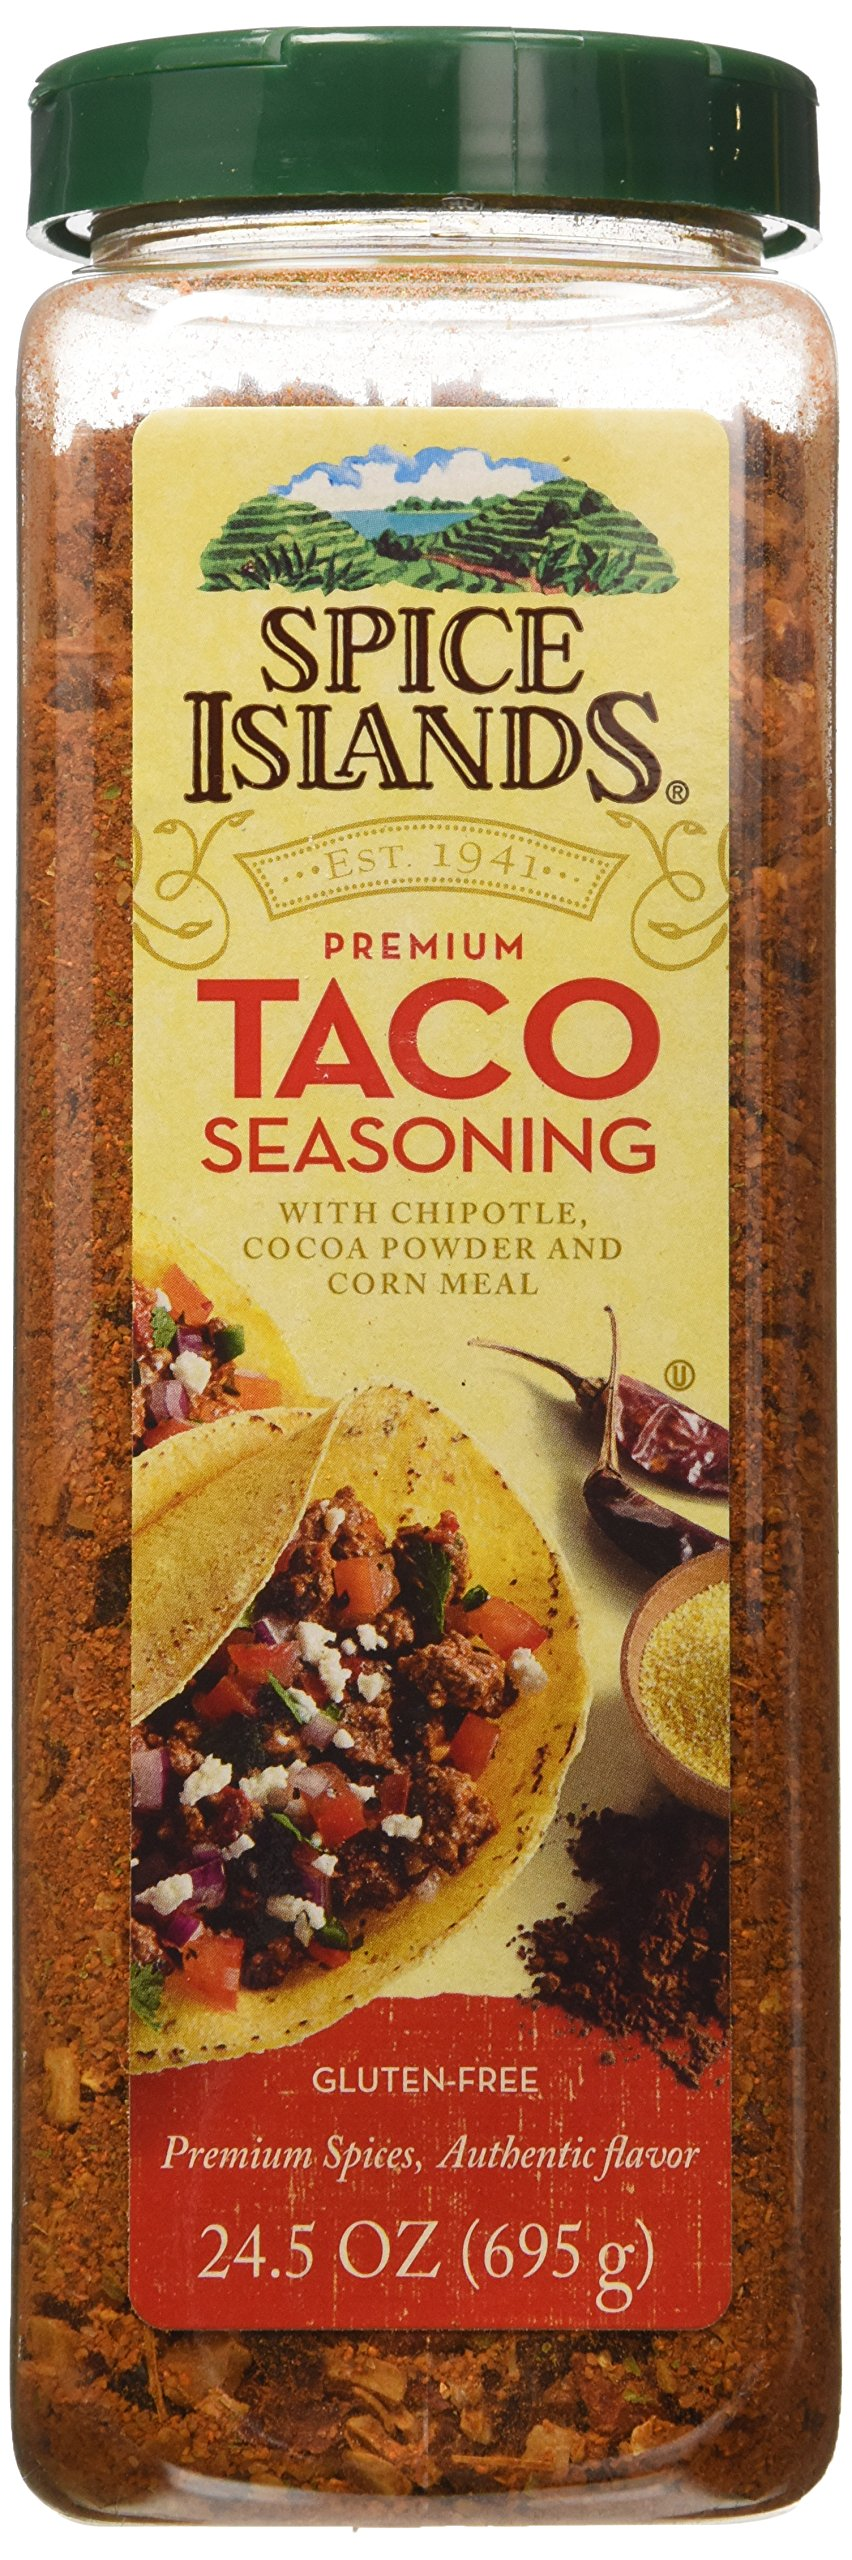 Spice Islands Premium Taco Seasoning with Chipotle Cocoa Powder and Corn Meal. Gluten Free